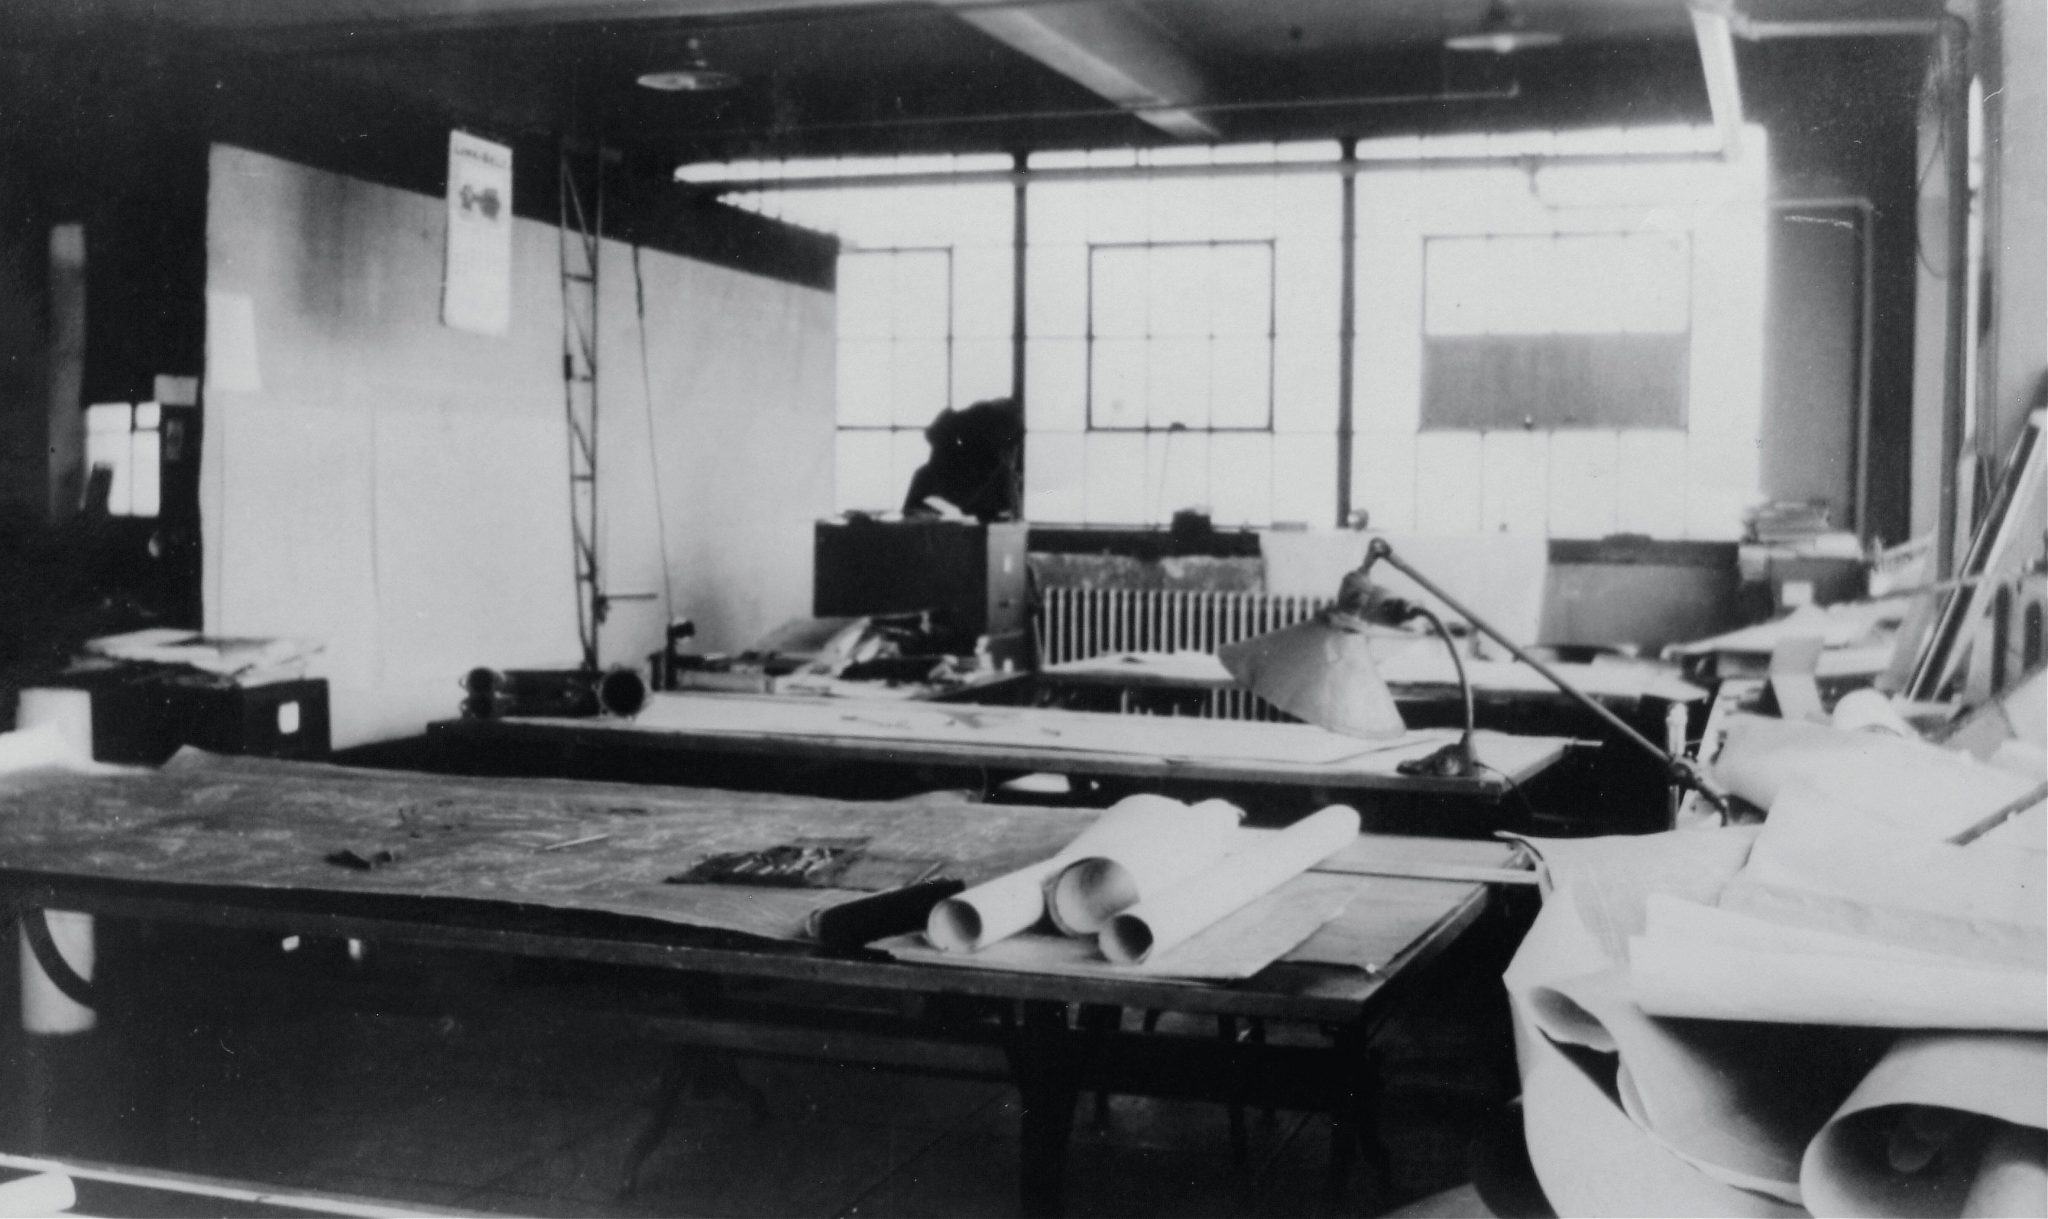 The Duesenberg facilities in Indianapolis provided for everything. This is the drafting room used by Fred Duesenberg and the engineering staff at various times. It was here that Fred would layout the design for the Model J in 1928.